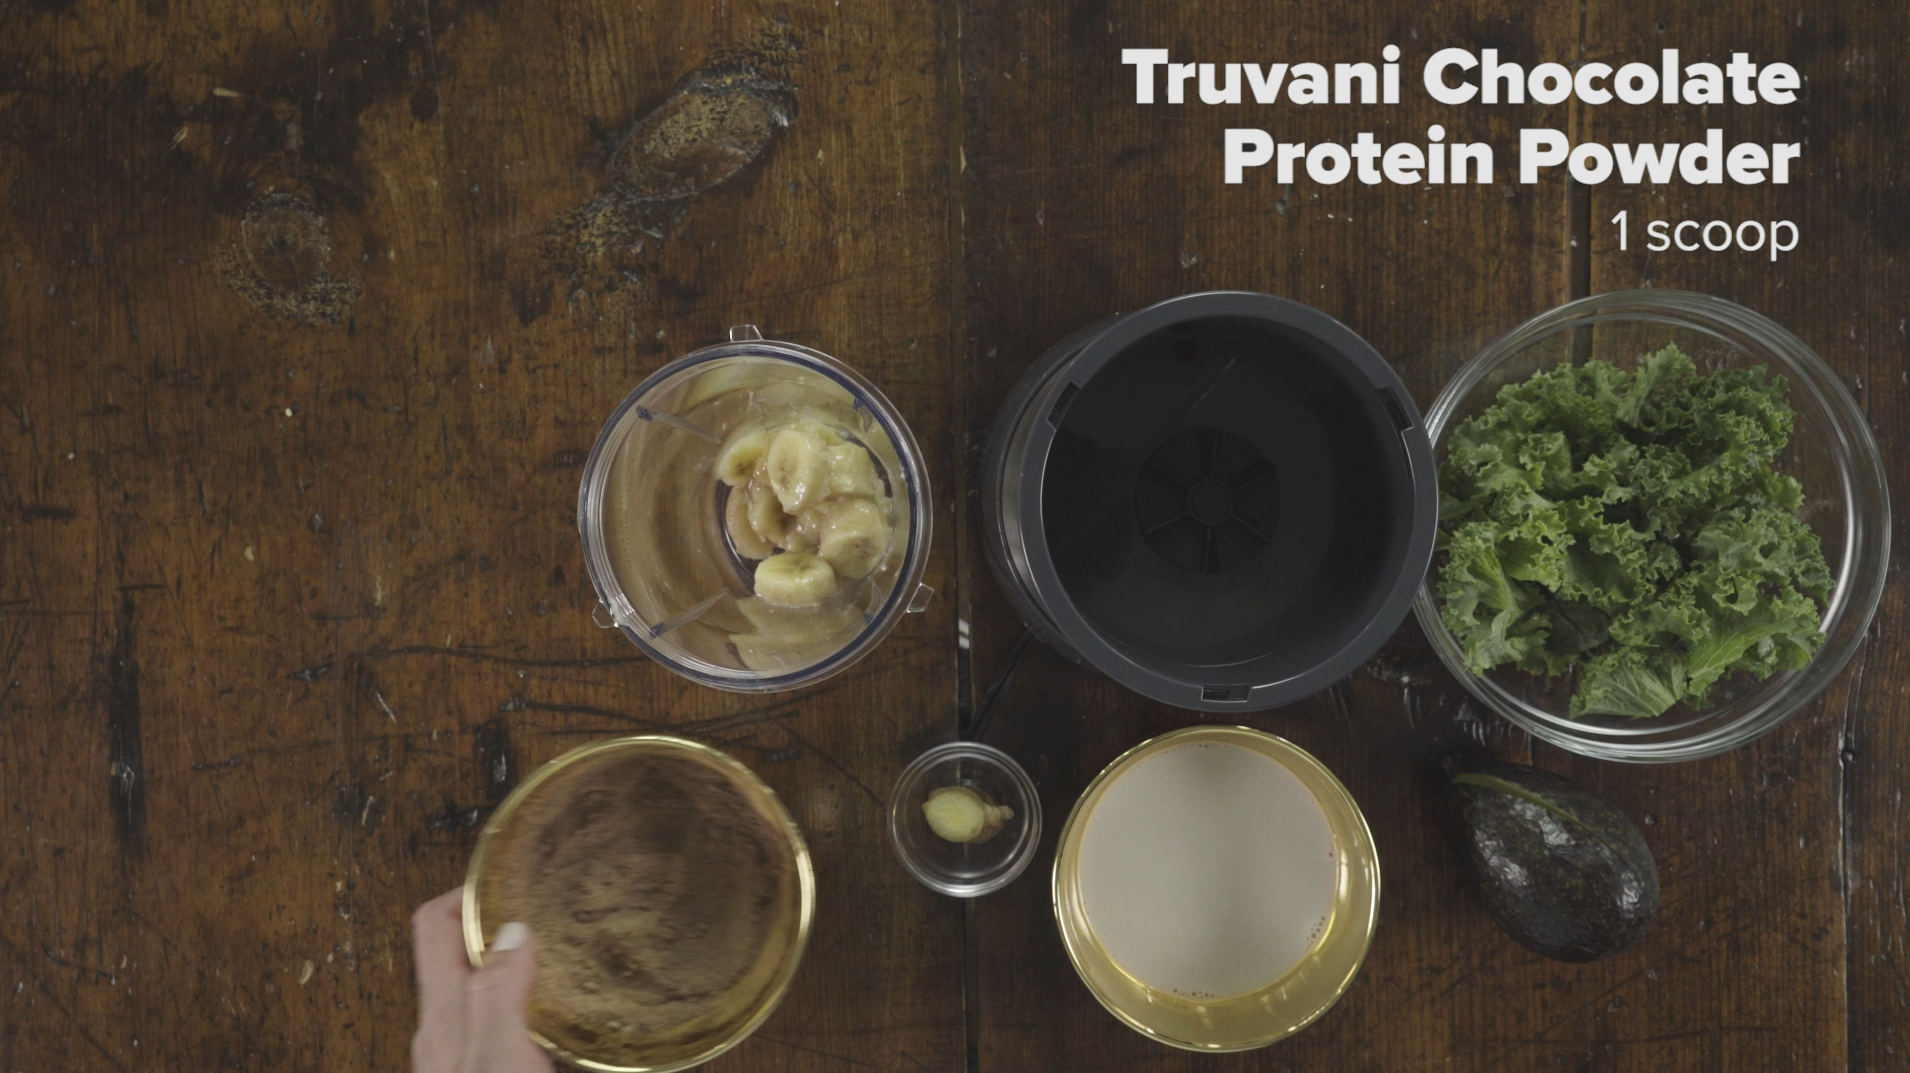 Step 2 Add 1 Scoop Truvani Chocolate Protein Powder